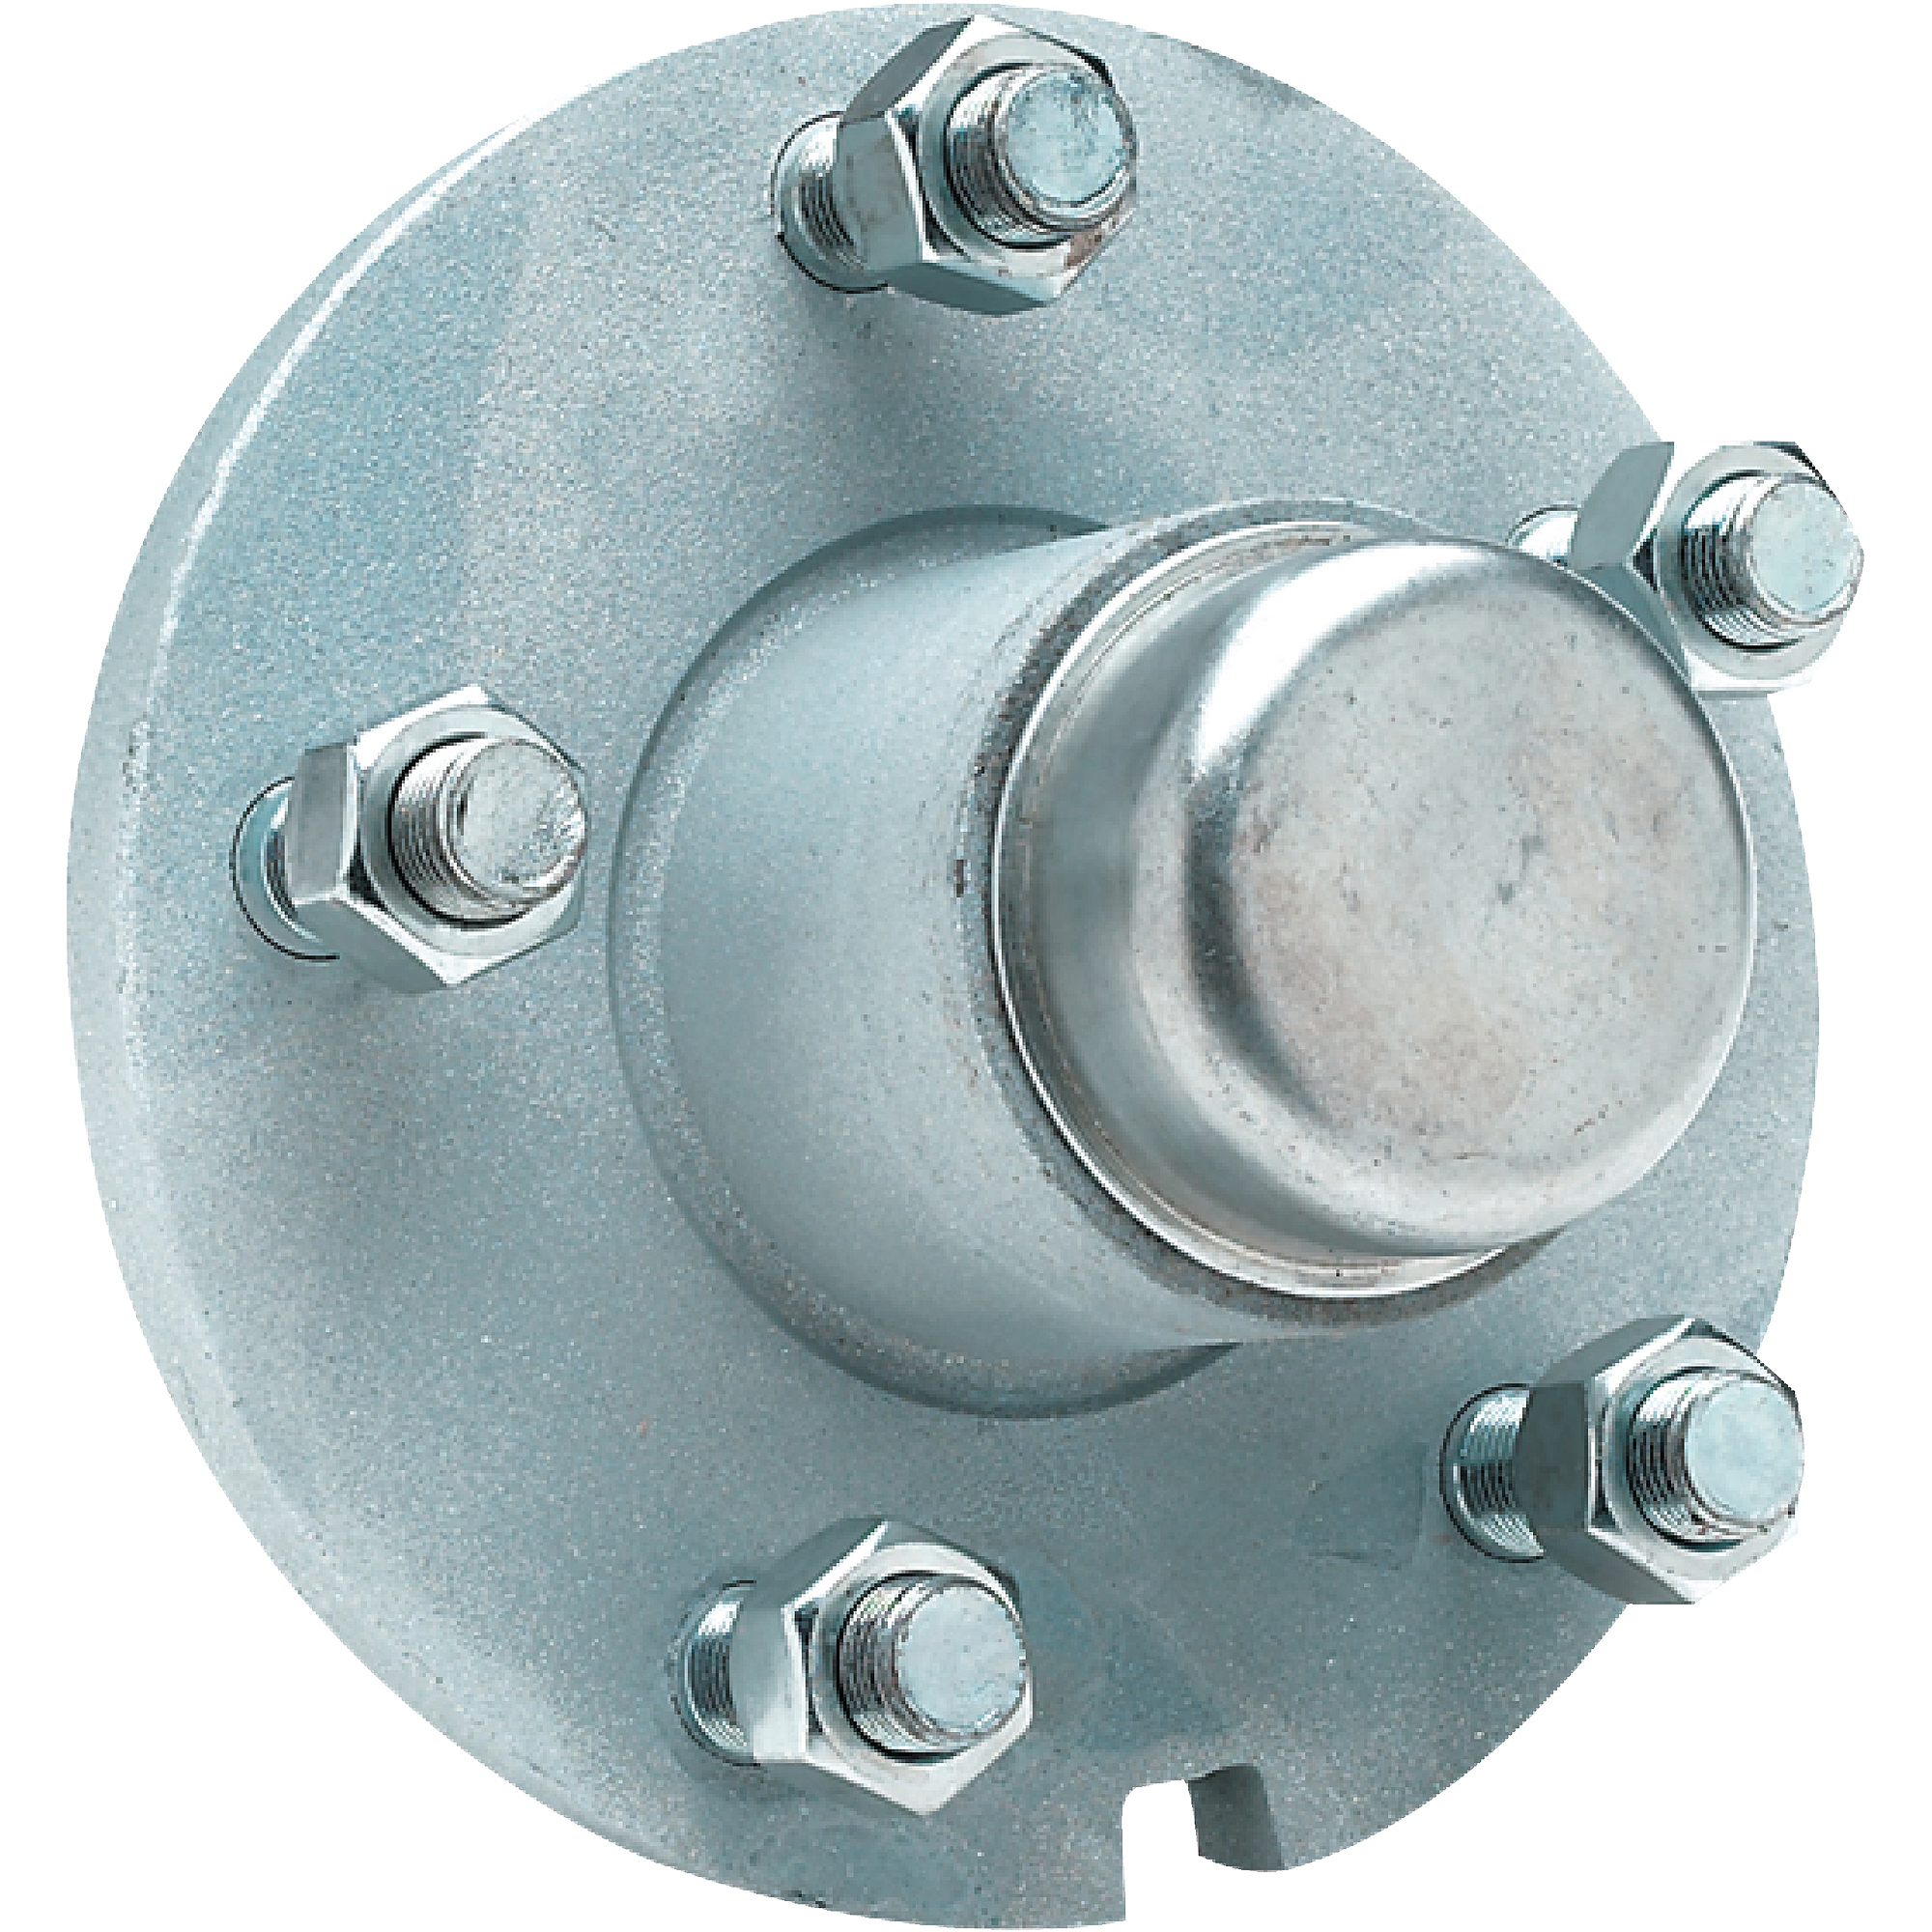 Seachoice Galvanized Trailer Wheel Hub